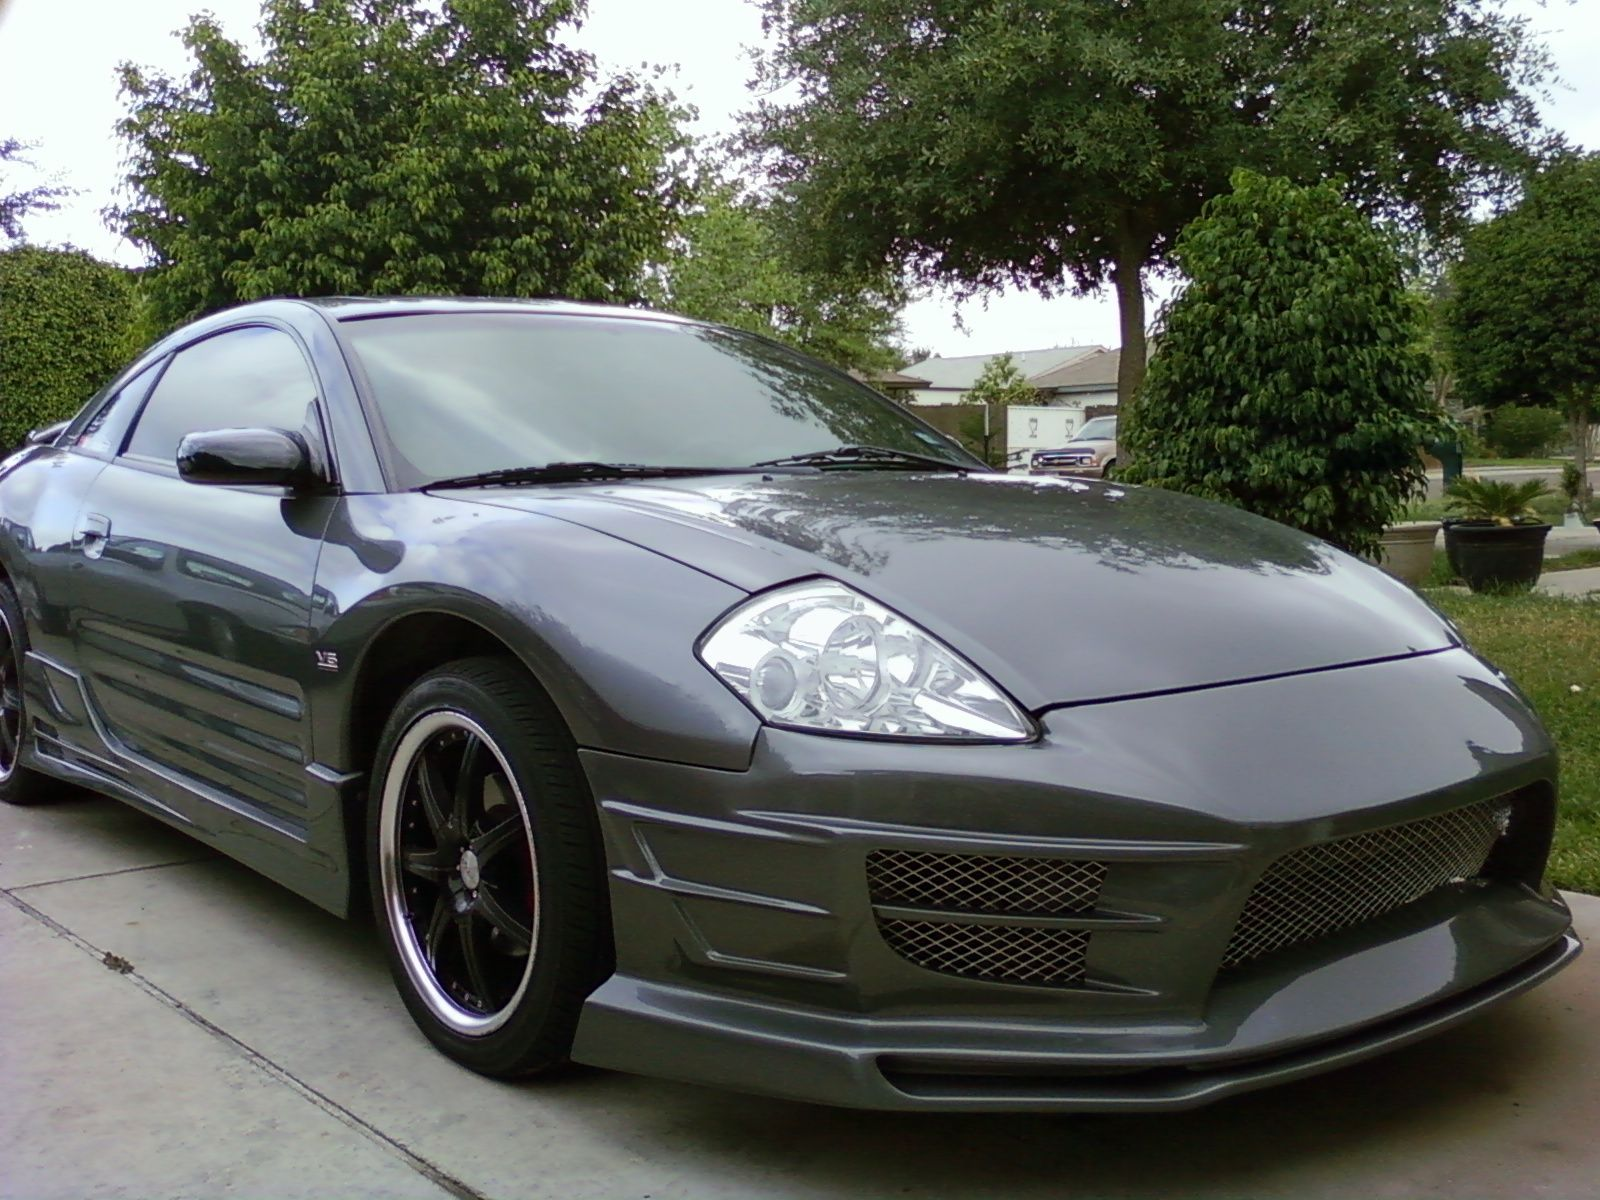 mitsubishi eclipse 2003 body kits mitsubishi eclipse pinterest mitsubishi eclipse cars. Black Bedroom Furniture Sets. Home Design Ideas